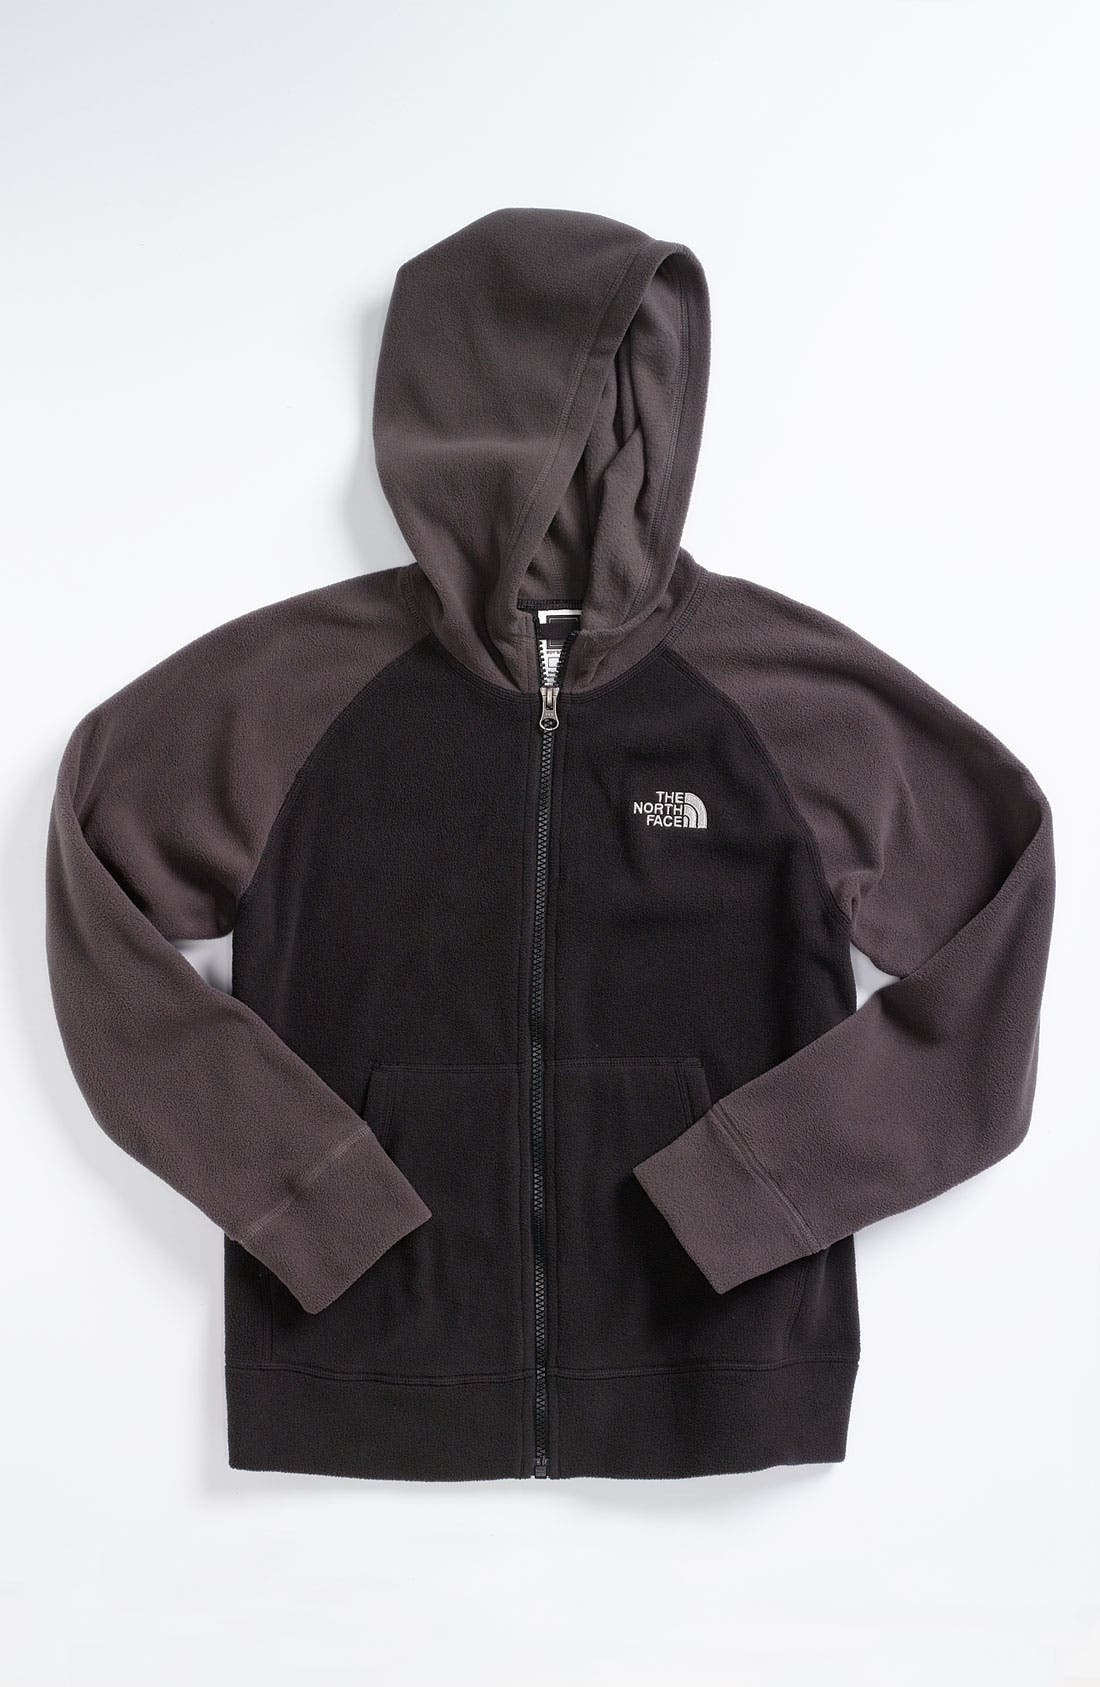 Main Image - The North Face 'Glacier' Full Zip Hoodie (Big Boys)